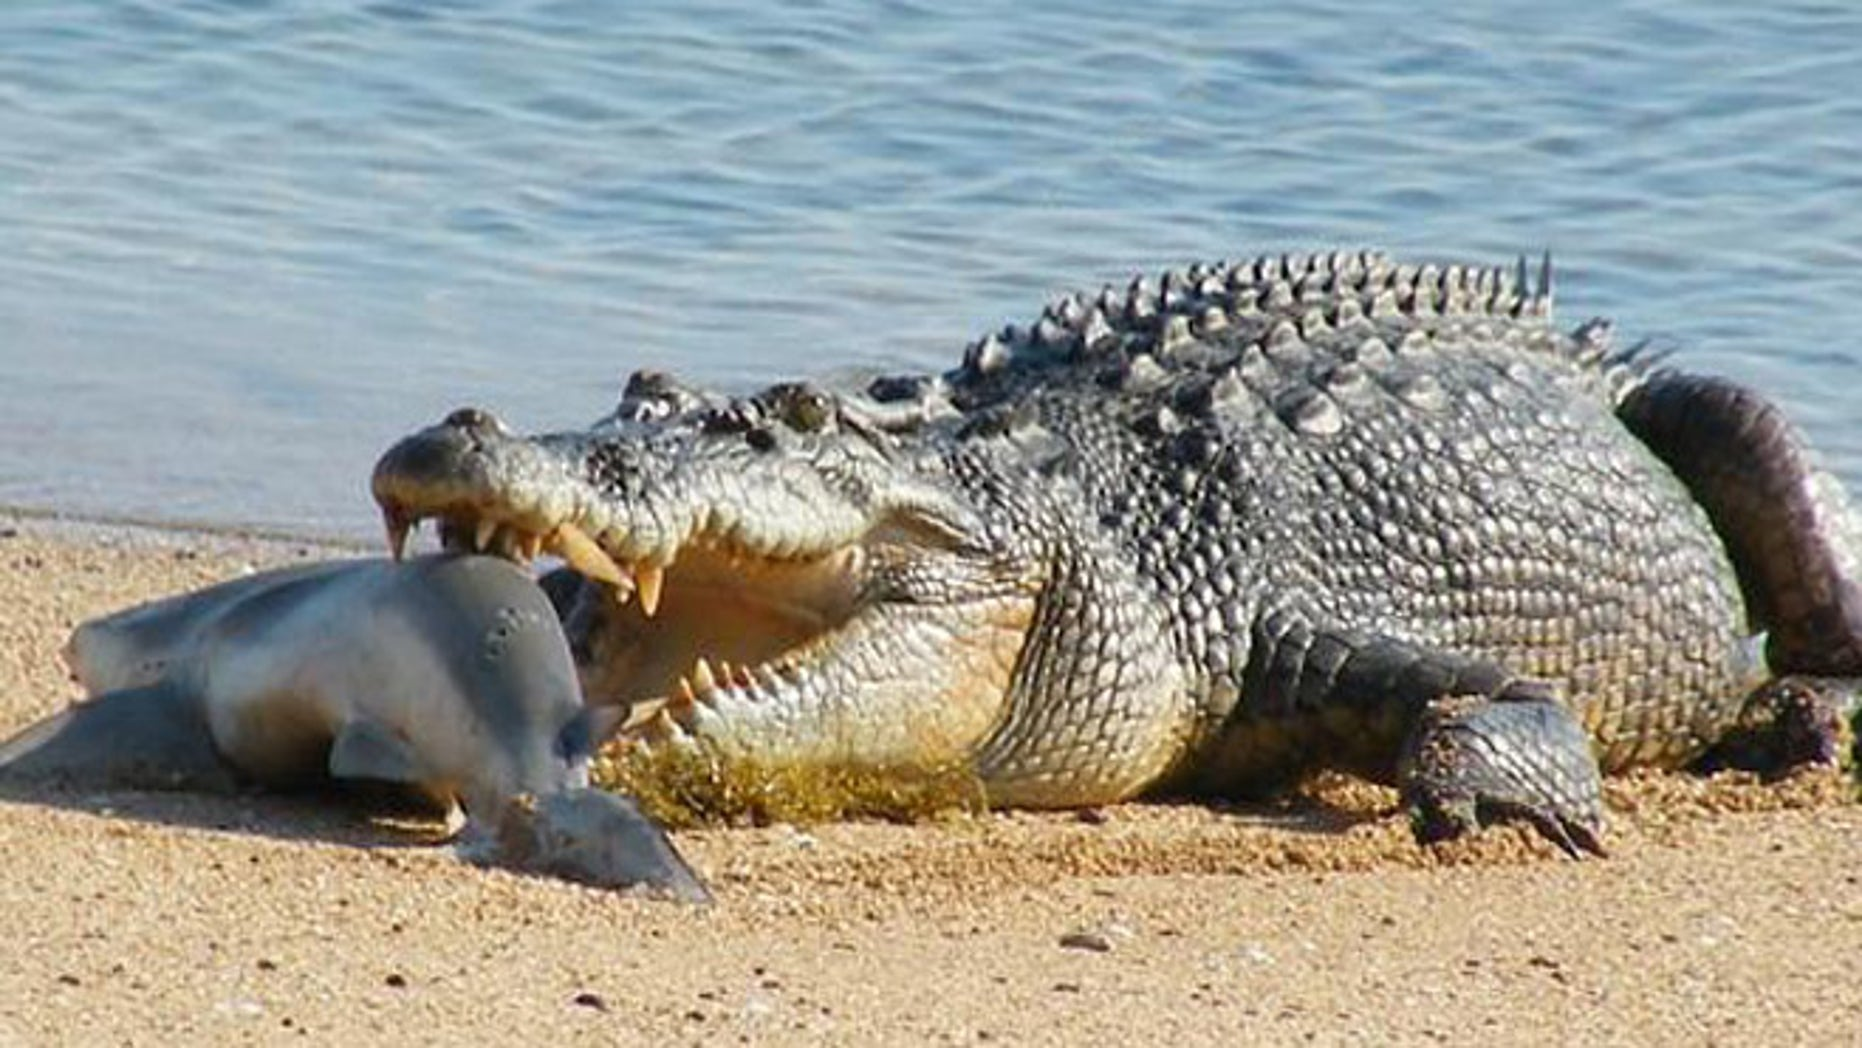 A crocodile similar to this one here, shown eating a shark at Cobourg Peninsula in Australia's Northern Territory, battled a shark in the Adelaide River on Monday.